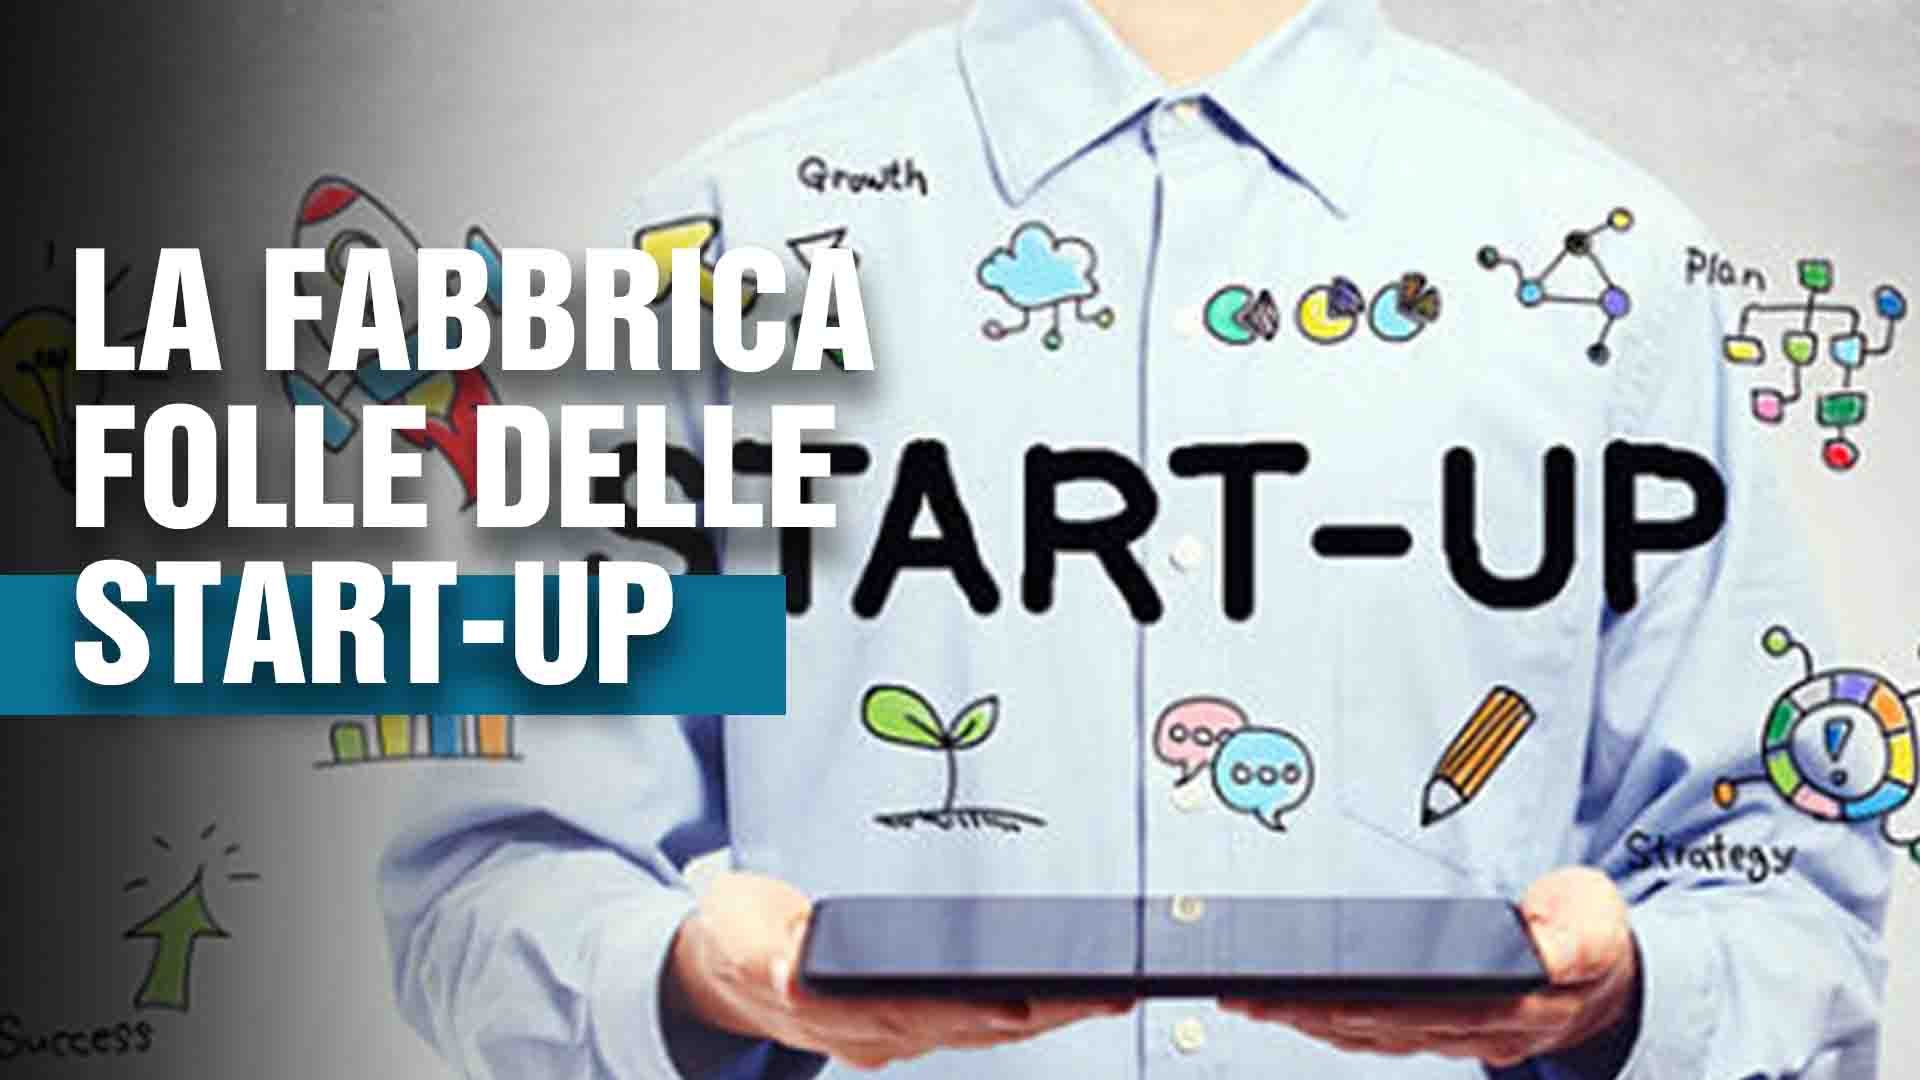 Fabbrica start up